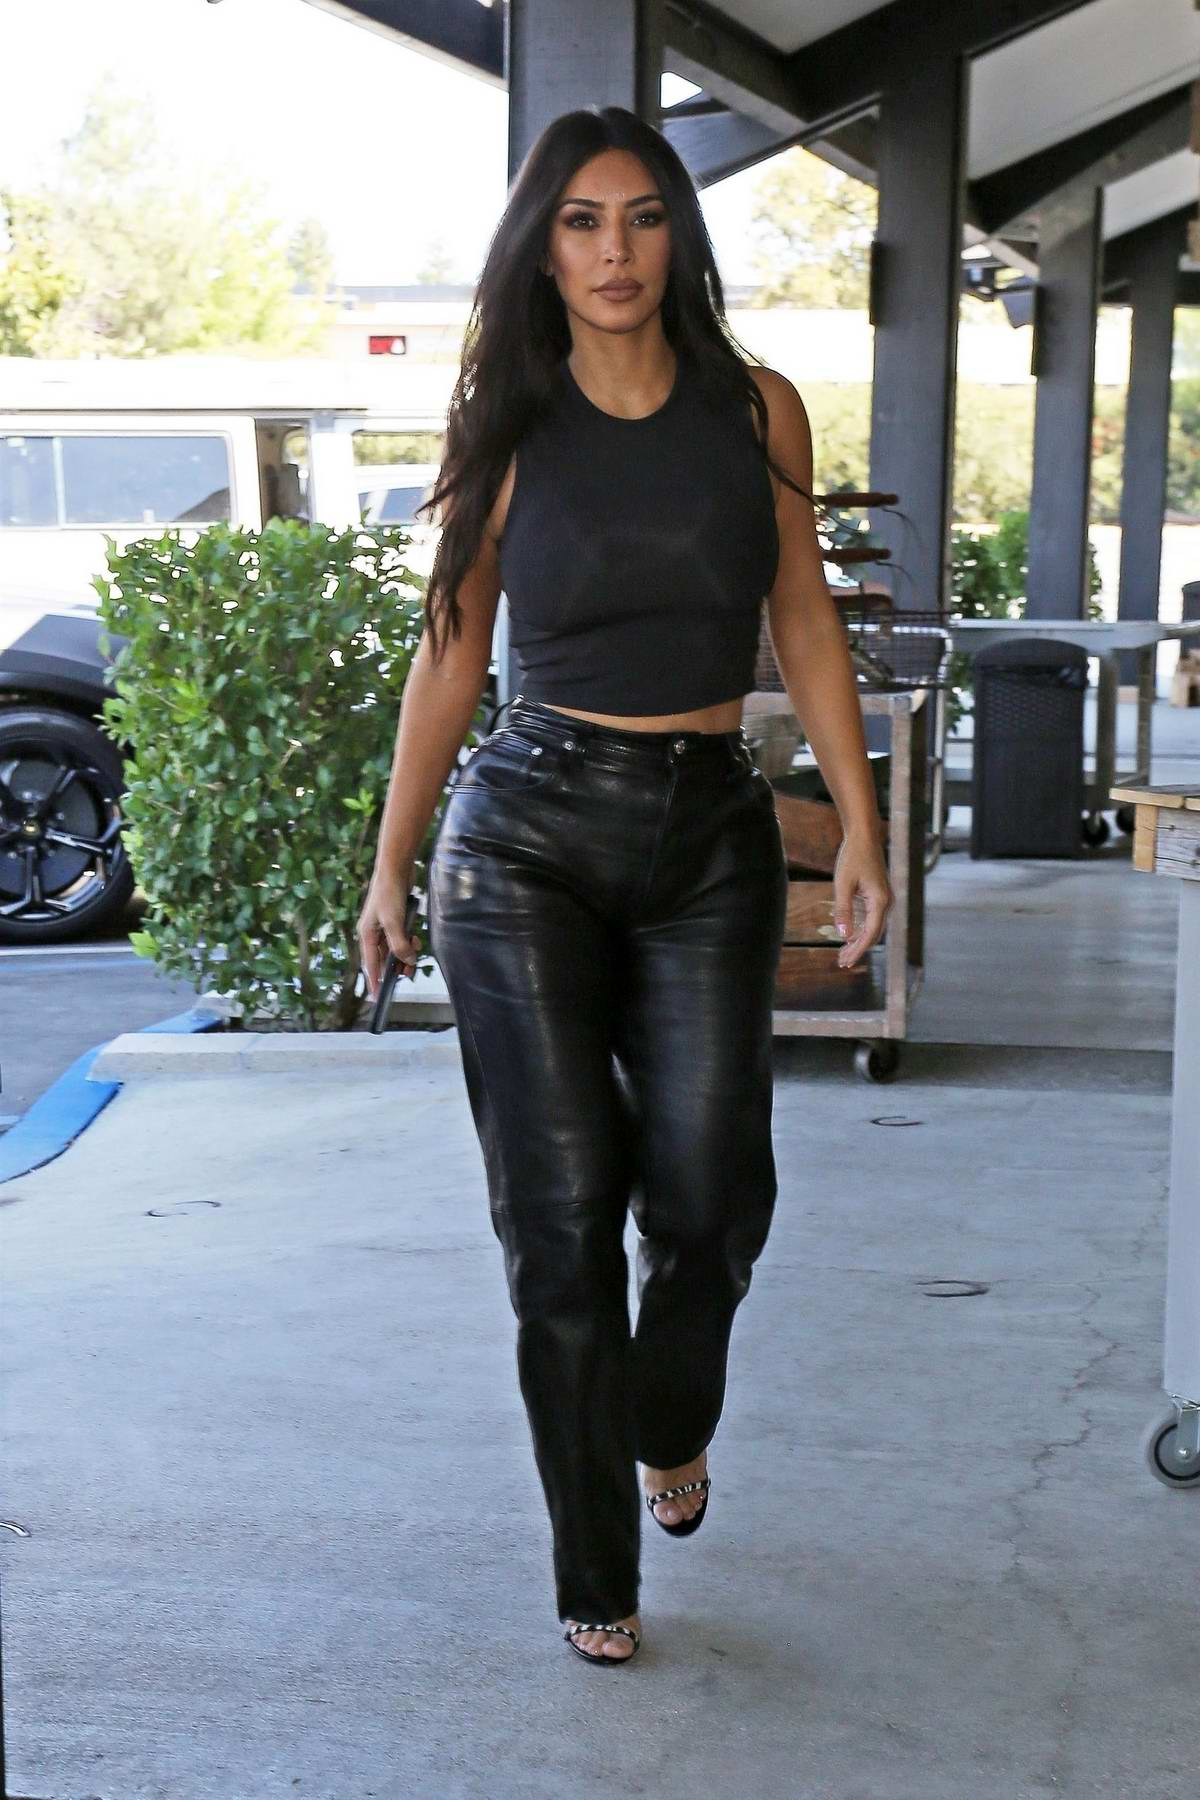 Kim Kardashian dons all black as she steps out for lunch in Los Angeles